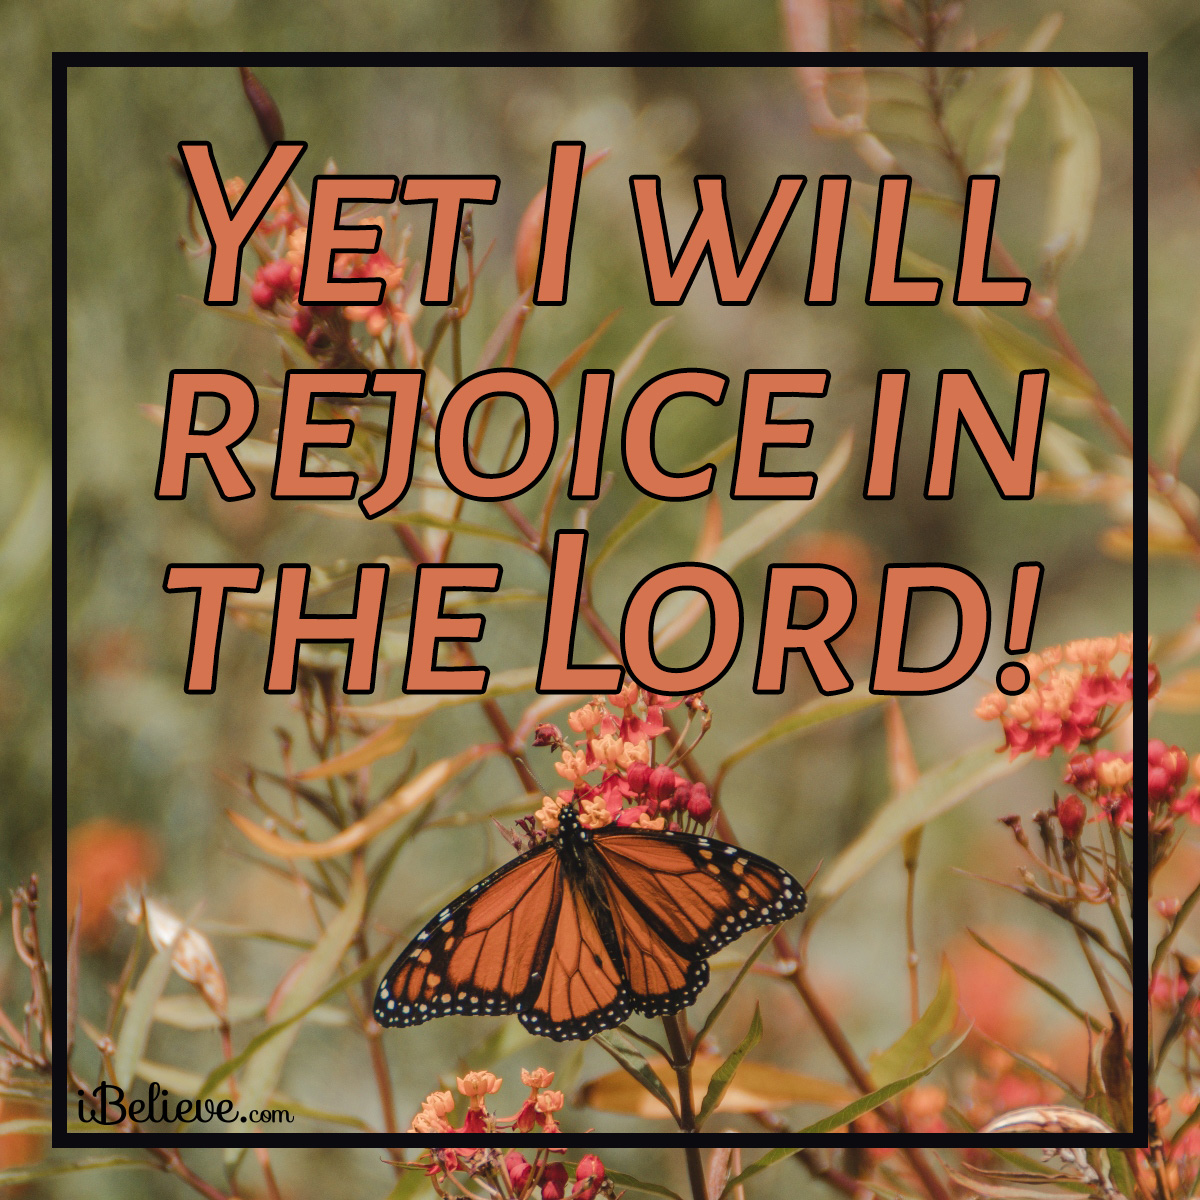 Yet I will rejoice in the Lord, inspirational image